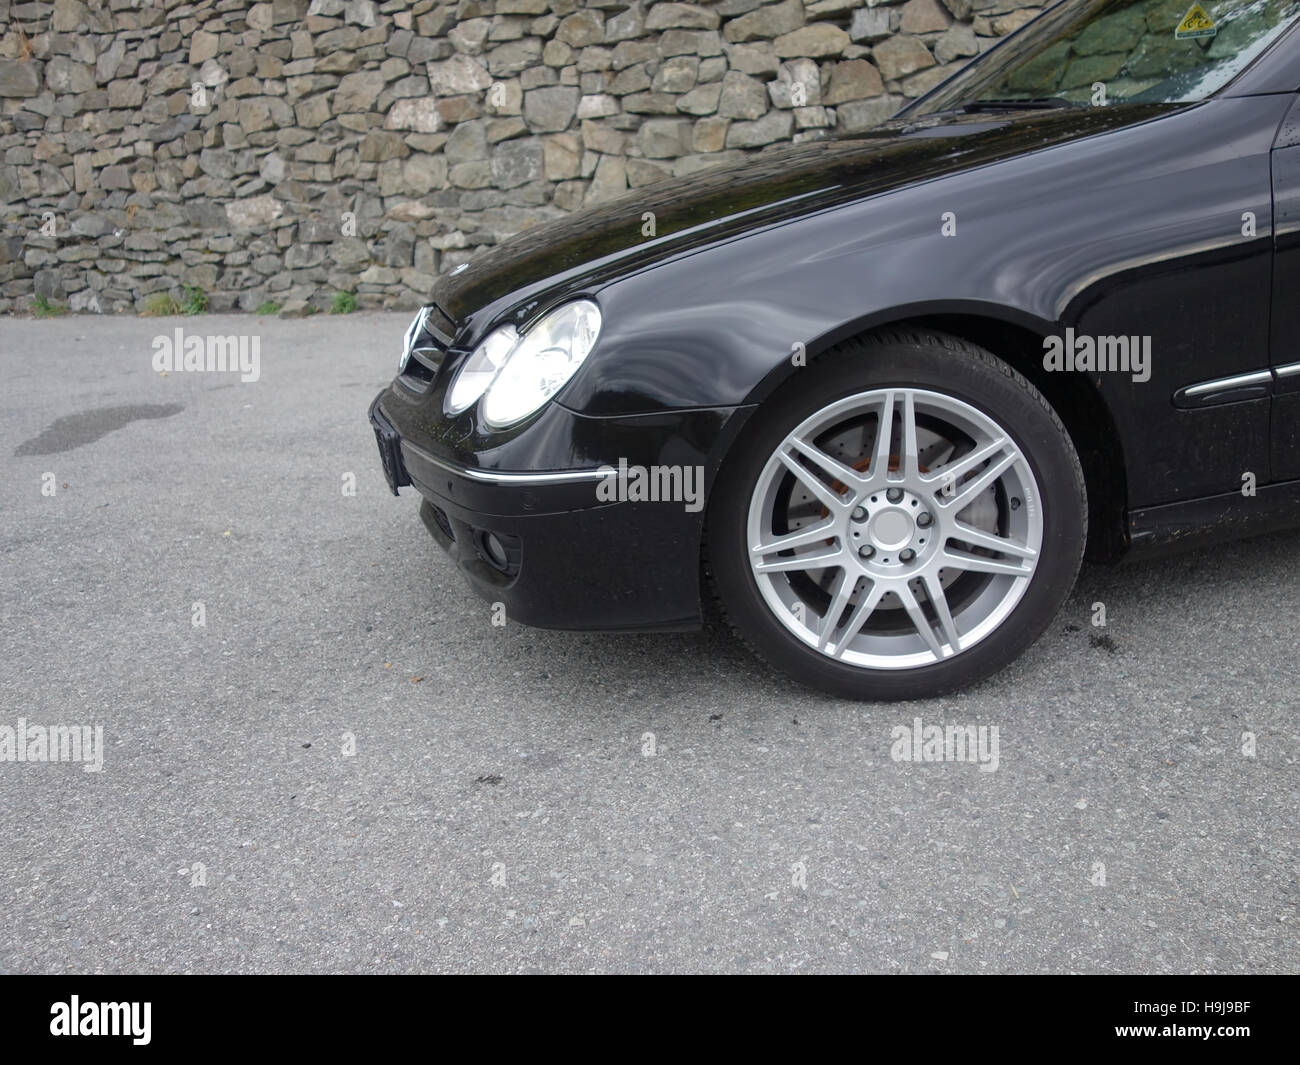 mercedes benz clk w209 left side fender hood alloy wheels stock